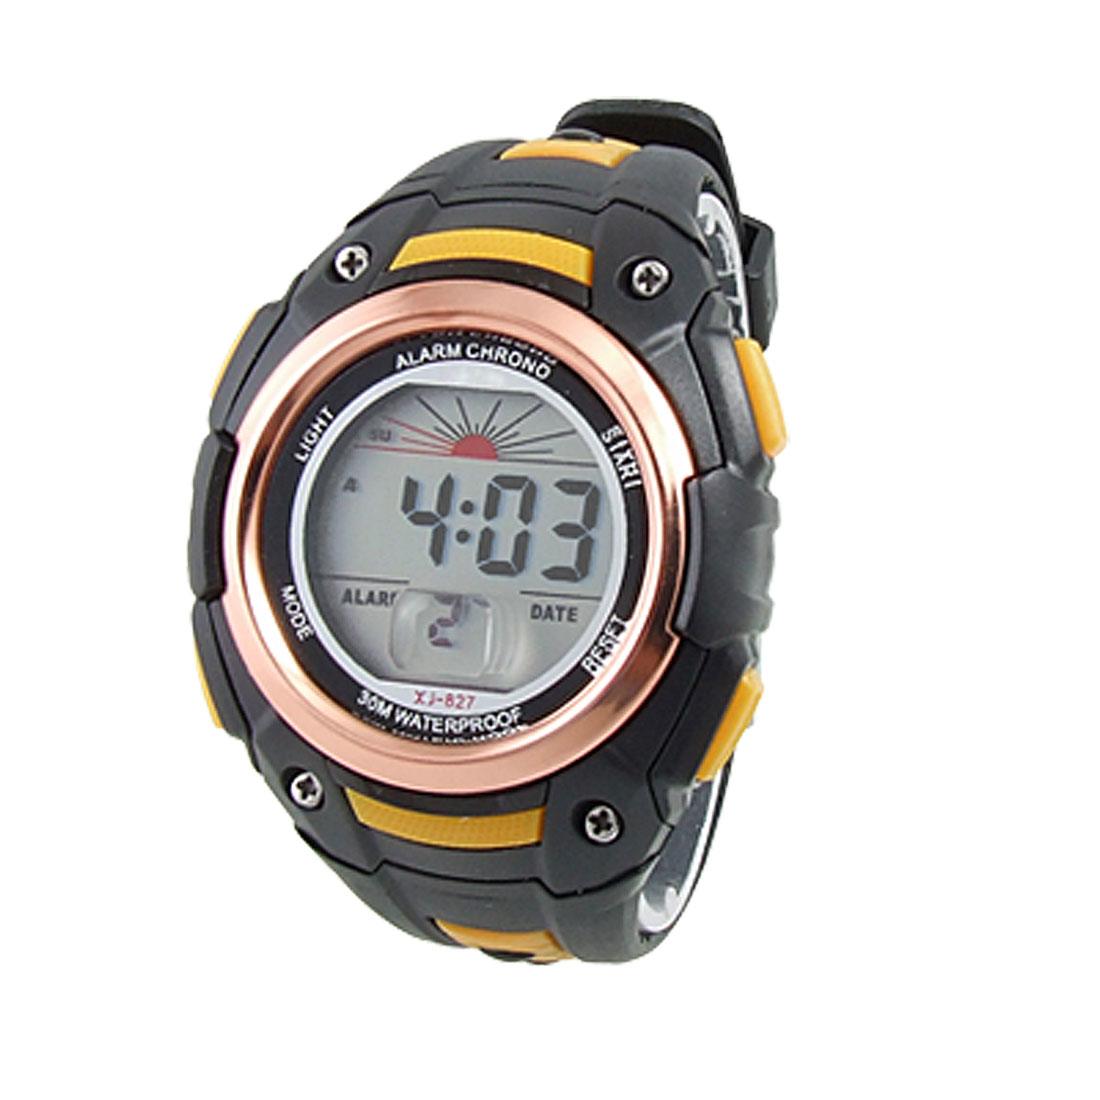 Raised Second Part Round Dial Copper Color Case Digital Sports Watch